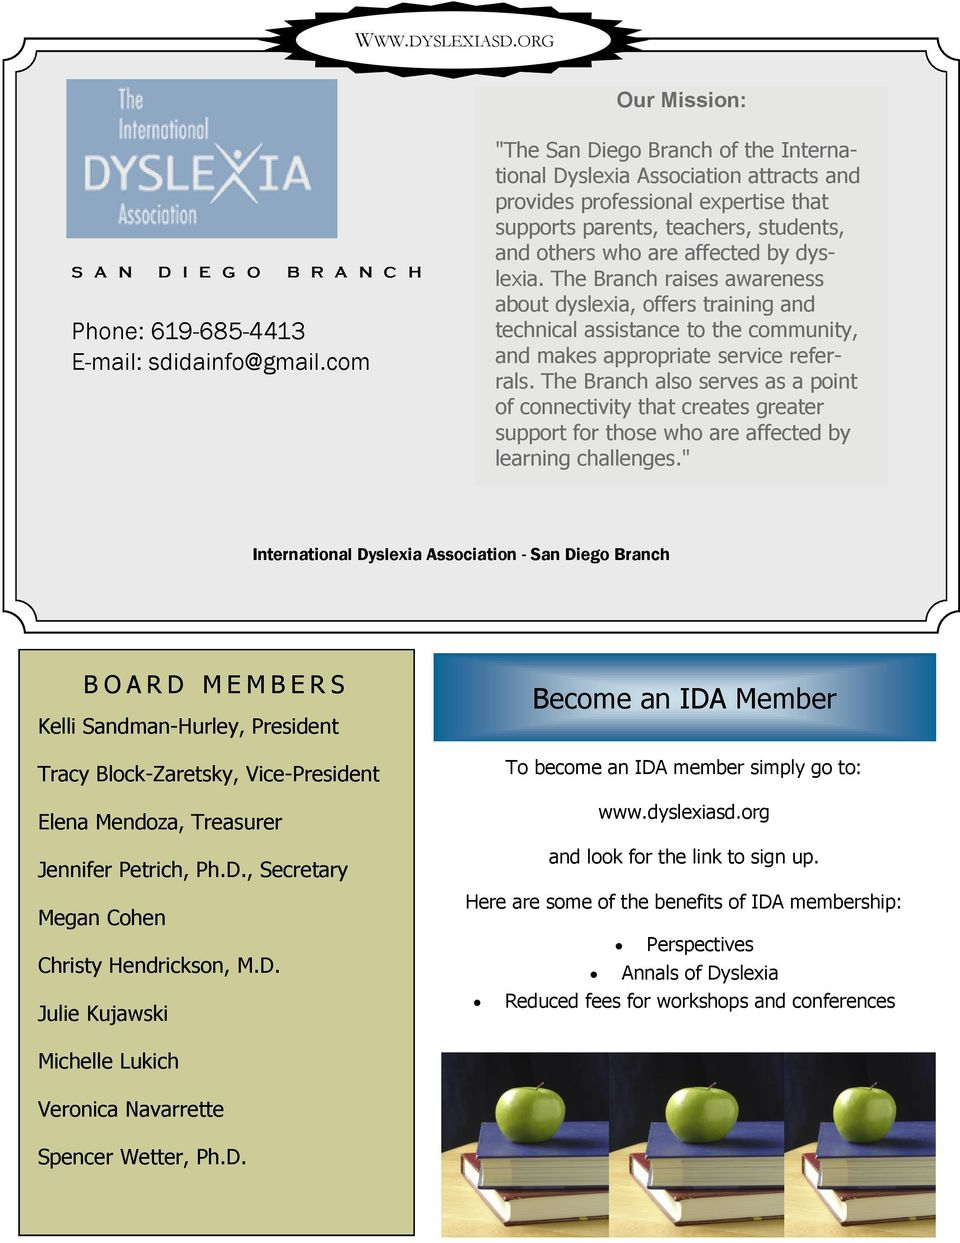 The Branch raises awareness about dyslexia, offers training and technical assistance to the community, and makes appropriate service referrals.